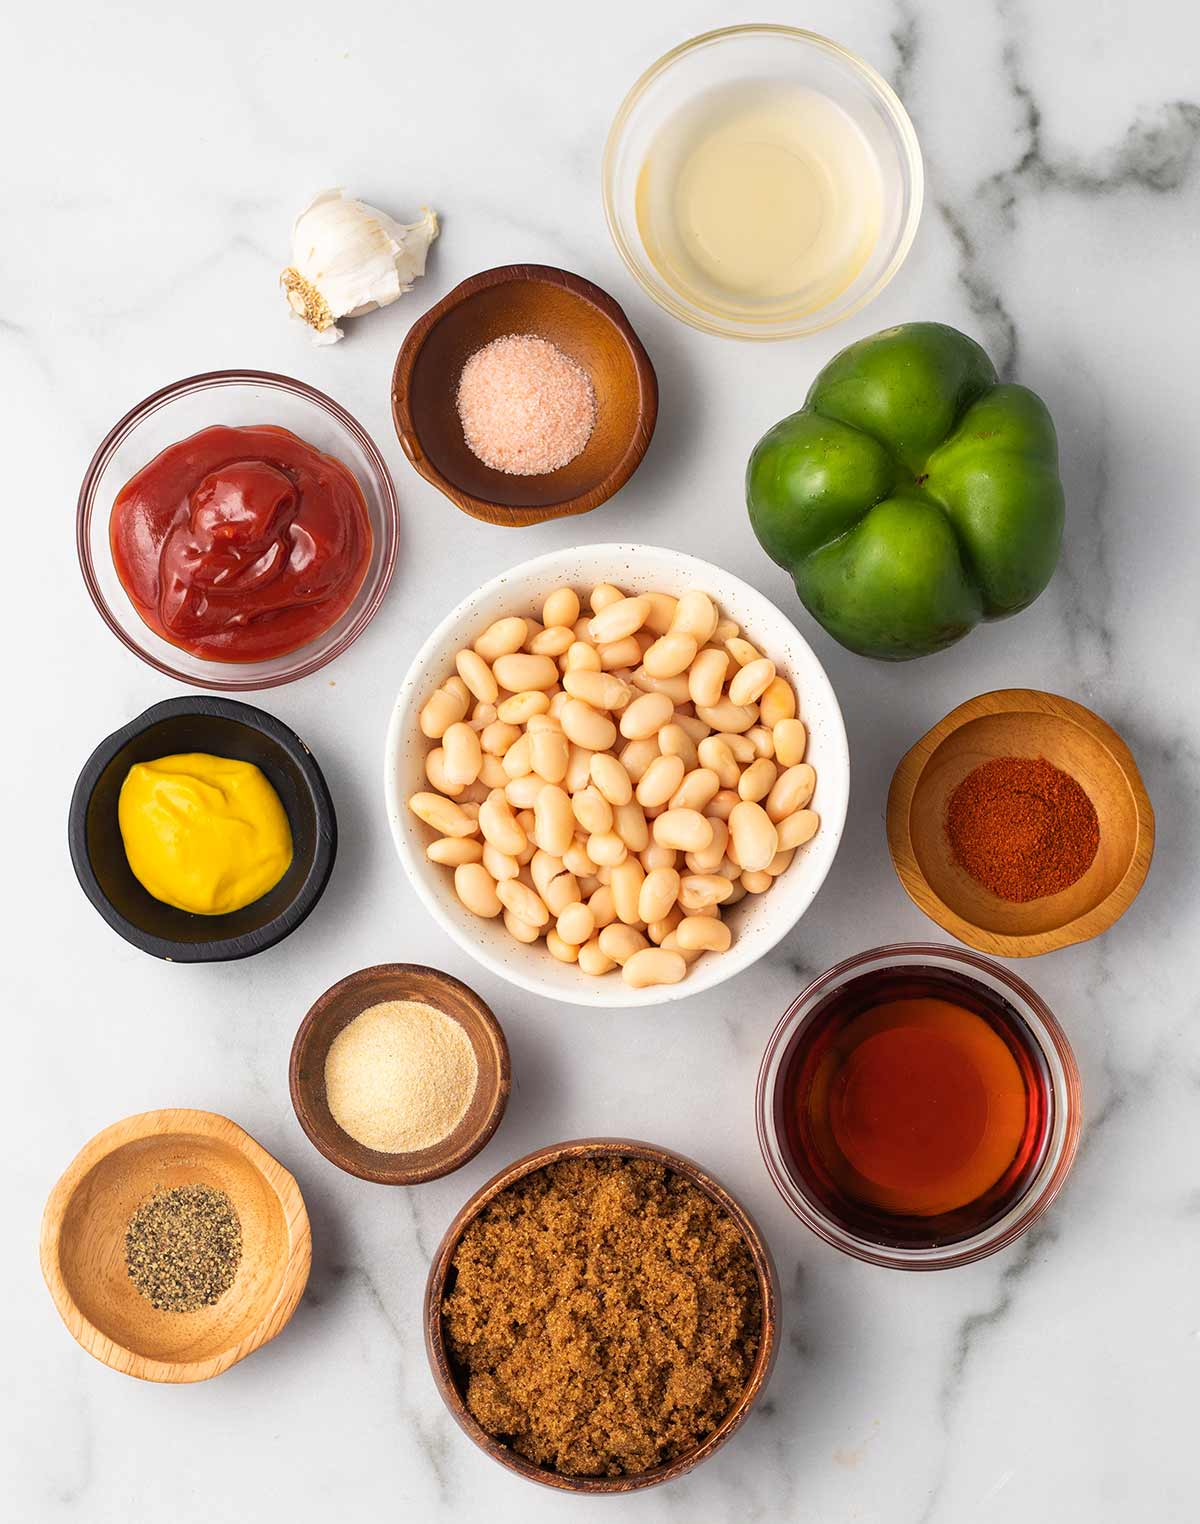 Ingredients for vegan baked beans laid in small bowls on a marble surface: beans, ketchup, green bell pepper, salt, apple cider vinegar, smoked paprika, maple syrup, brown sugar, garlic powder, pepper, and mustard.